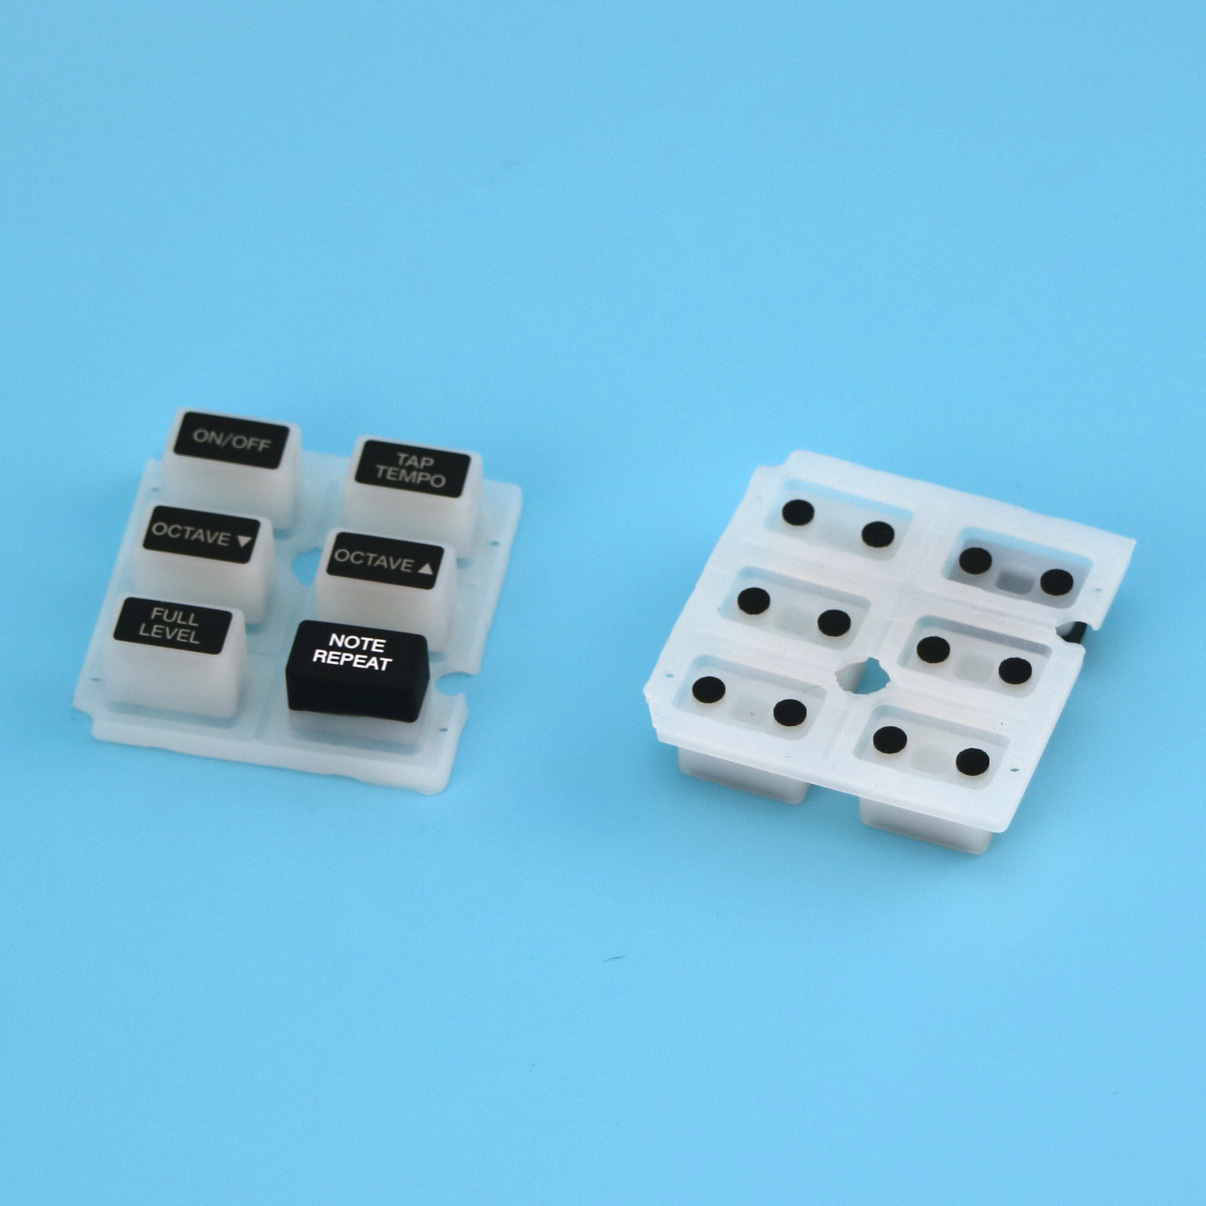 Silicone keypads with backlit effect, with carbon pills